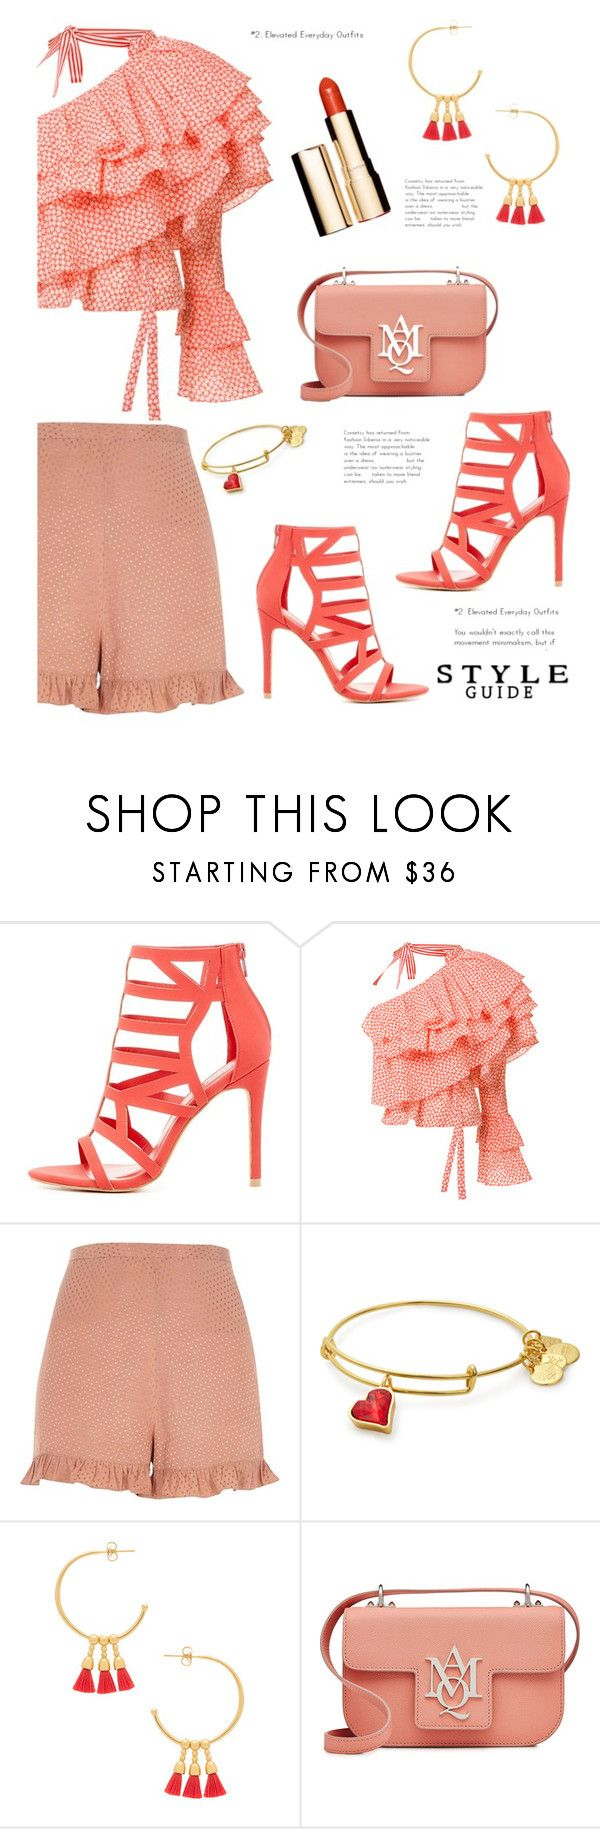 """""""Dress Up a Pair of Shorts'"""" by dianefantasy on Polyvore featuring Charlotte Russe, Rosie Assoulin, River Island, Gorjana, Alexander McQueen, Clarins, polyvorecommunity, contestentry and polyvoreeditorial"""